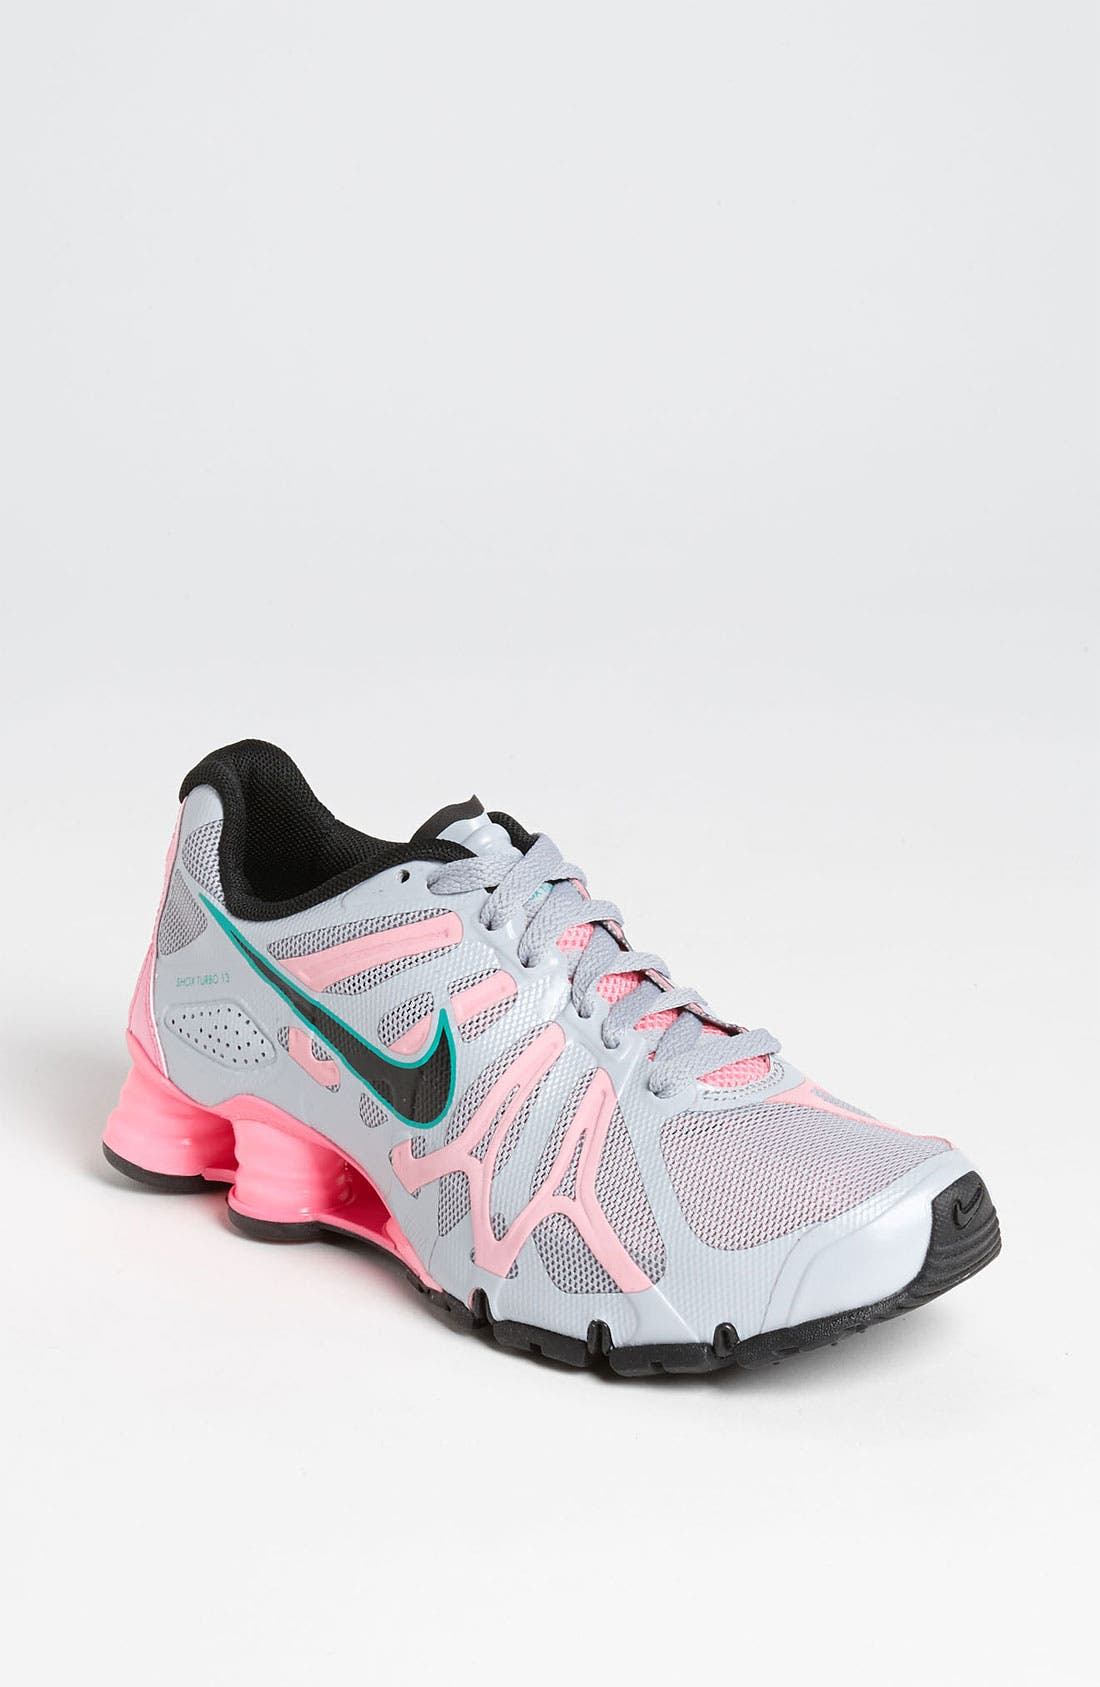 Alternate Image 1 Selected - Nike 'Shox Turbo+ 13' Running Shoe (Women)